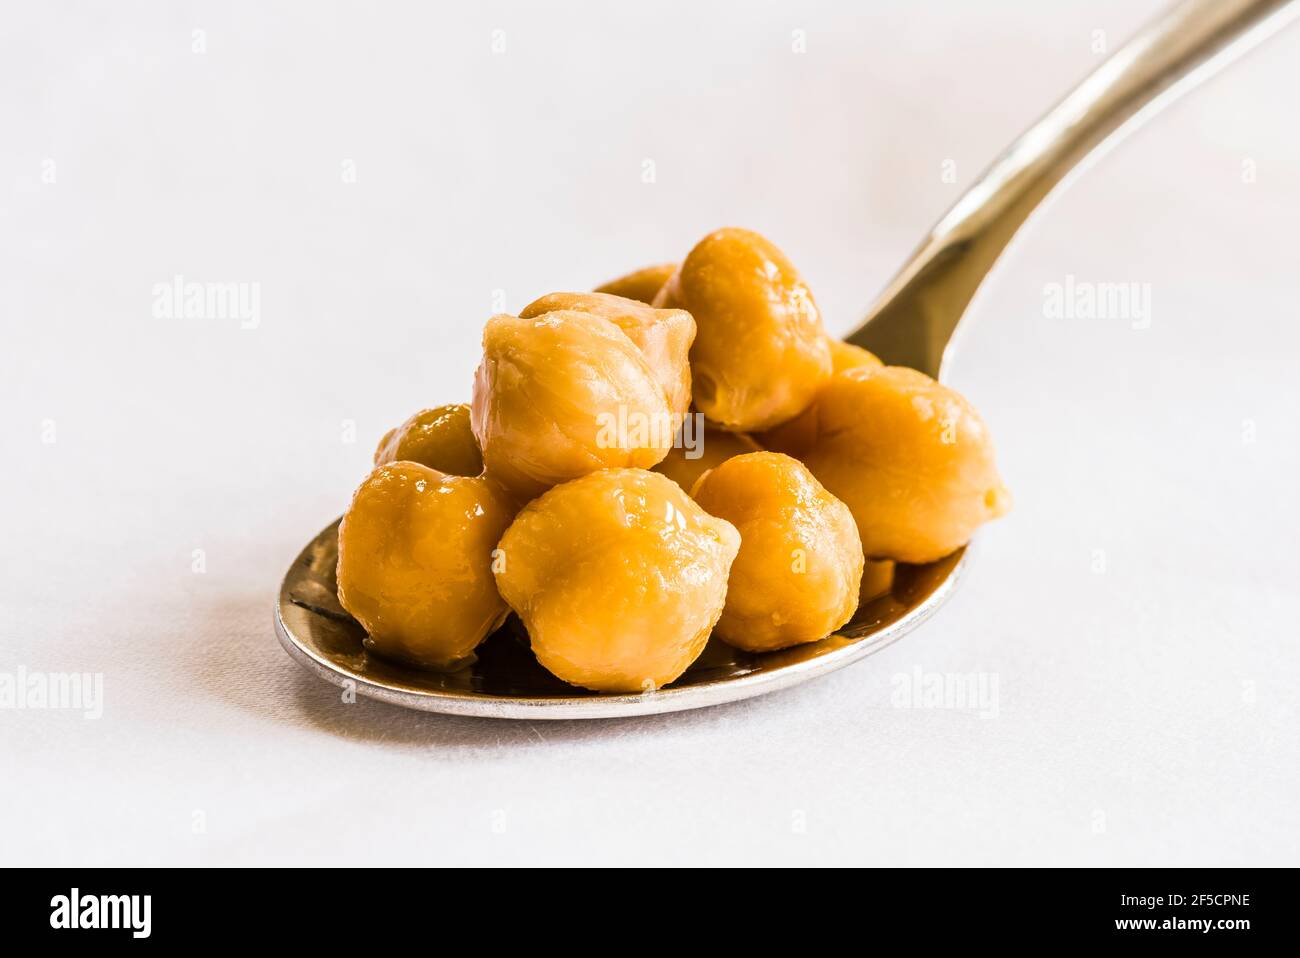 Close-up of chickpeas on a silver spoon on a white tablecloth, London, UK Stock Photo